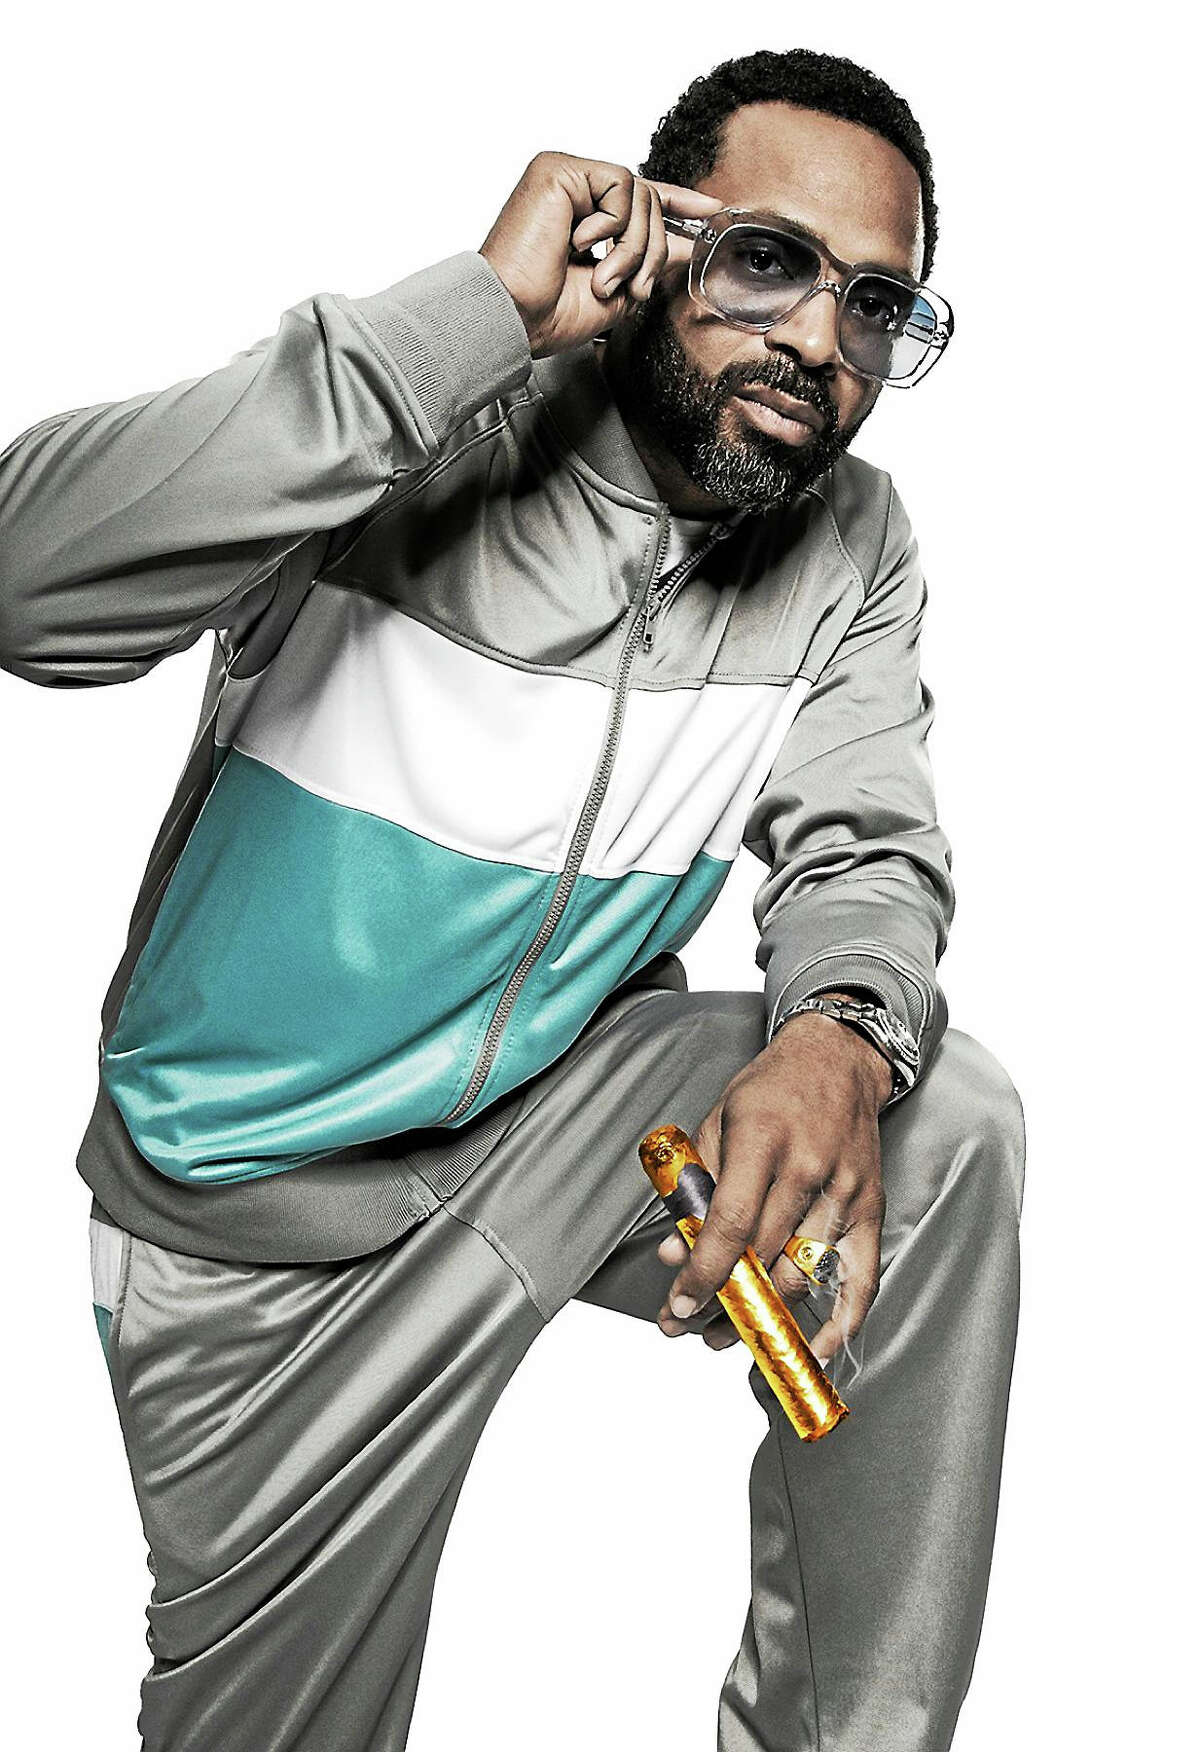 Contributed photoComedian, actor, film producer, writer and rapper Mike Epps will perform his stand up show at the Foxwoods Resort Casino Saturday, Dec. 19.